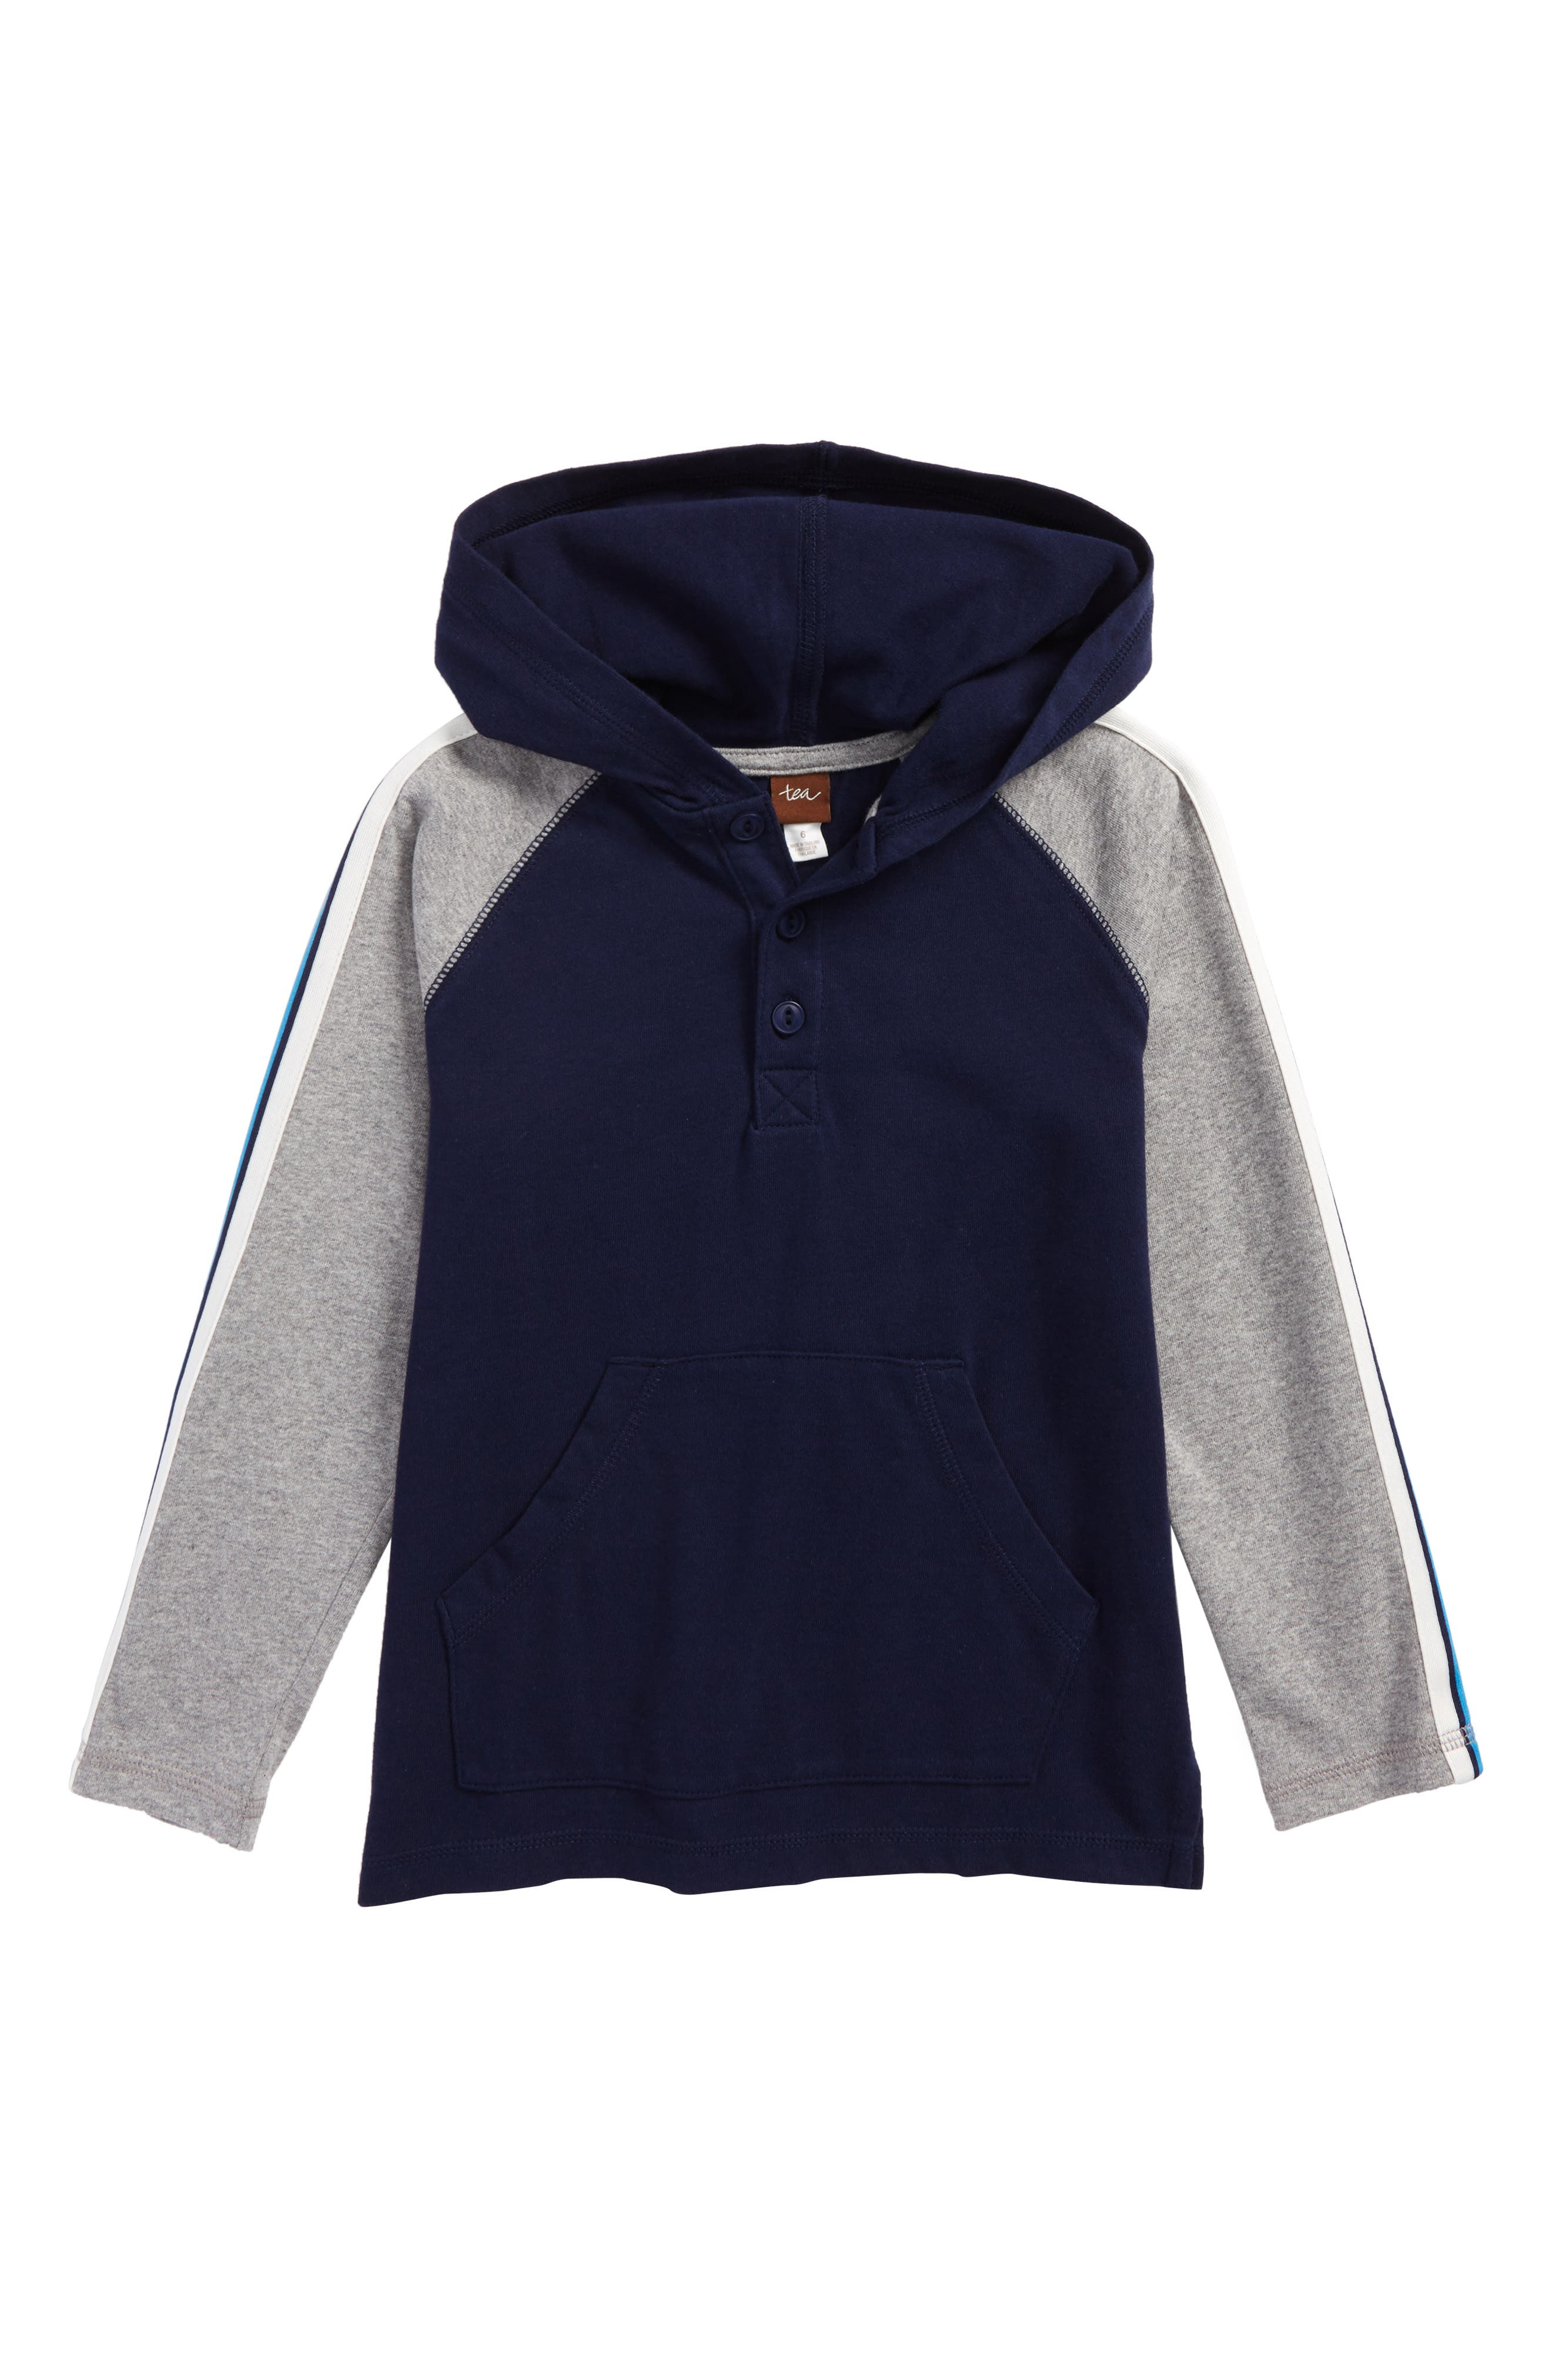 Main Image - Tea Collection Ewan Henley Hoodie (Toddler Boys & Little Boys)